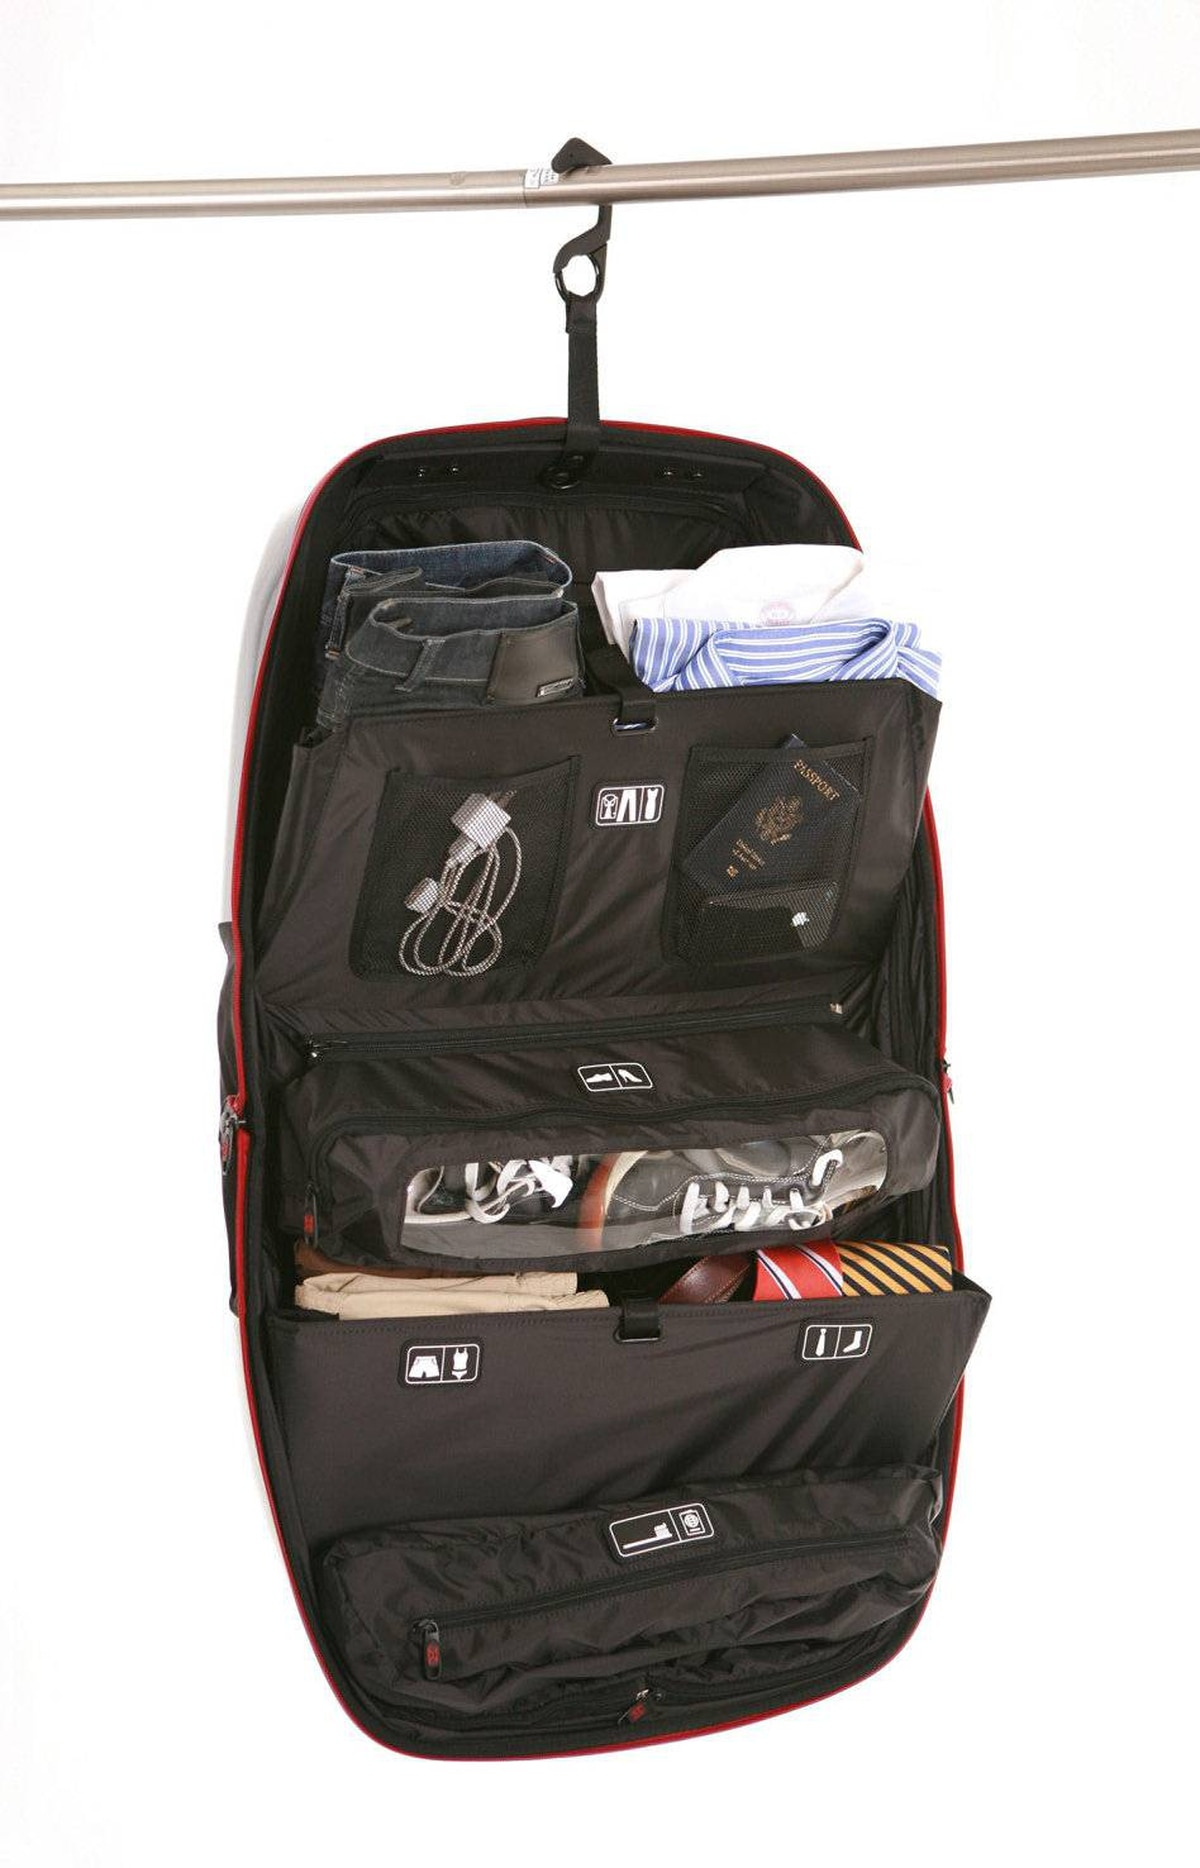 CLOSET ON THE MOVE Built for travellers who don't like to unpack, MOVE is a rolling carry-on case-cum-mobile closet. Stash your stuff in the cantilevered shelves and pockets. Once at your destination, Simply open the bag and hang it on the nearest hook. $450 (all prices U.S.)